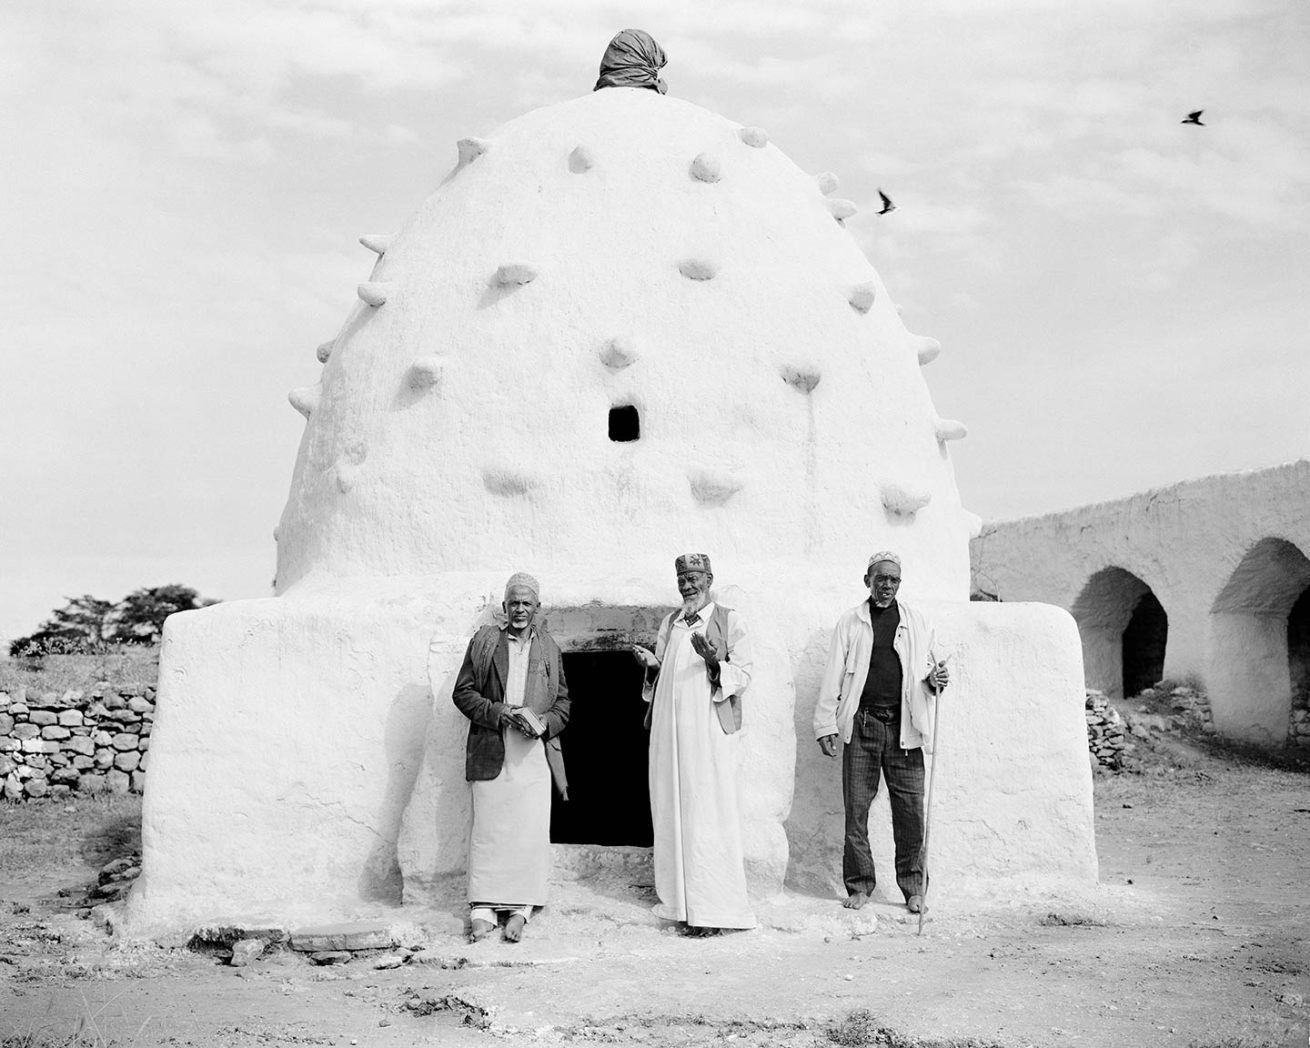 "Dire Sheikh Hussein: in front of Sheikh Abdel Kadir shrine, Sheek Mahmud, Sheek Hassan Salyo & Sheek Abdul-Jabbar. 4x5"" Black & White Film"